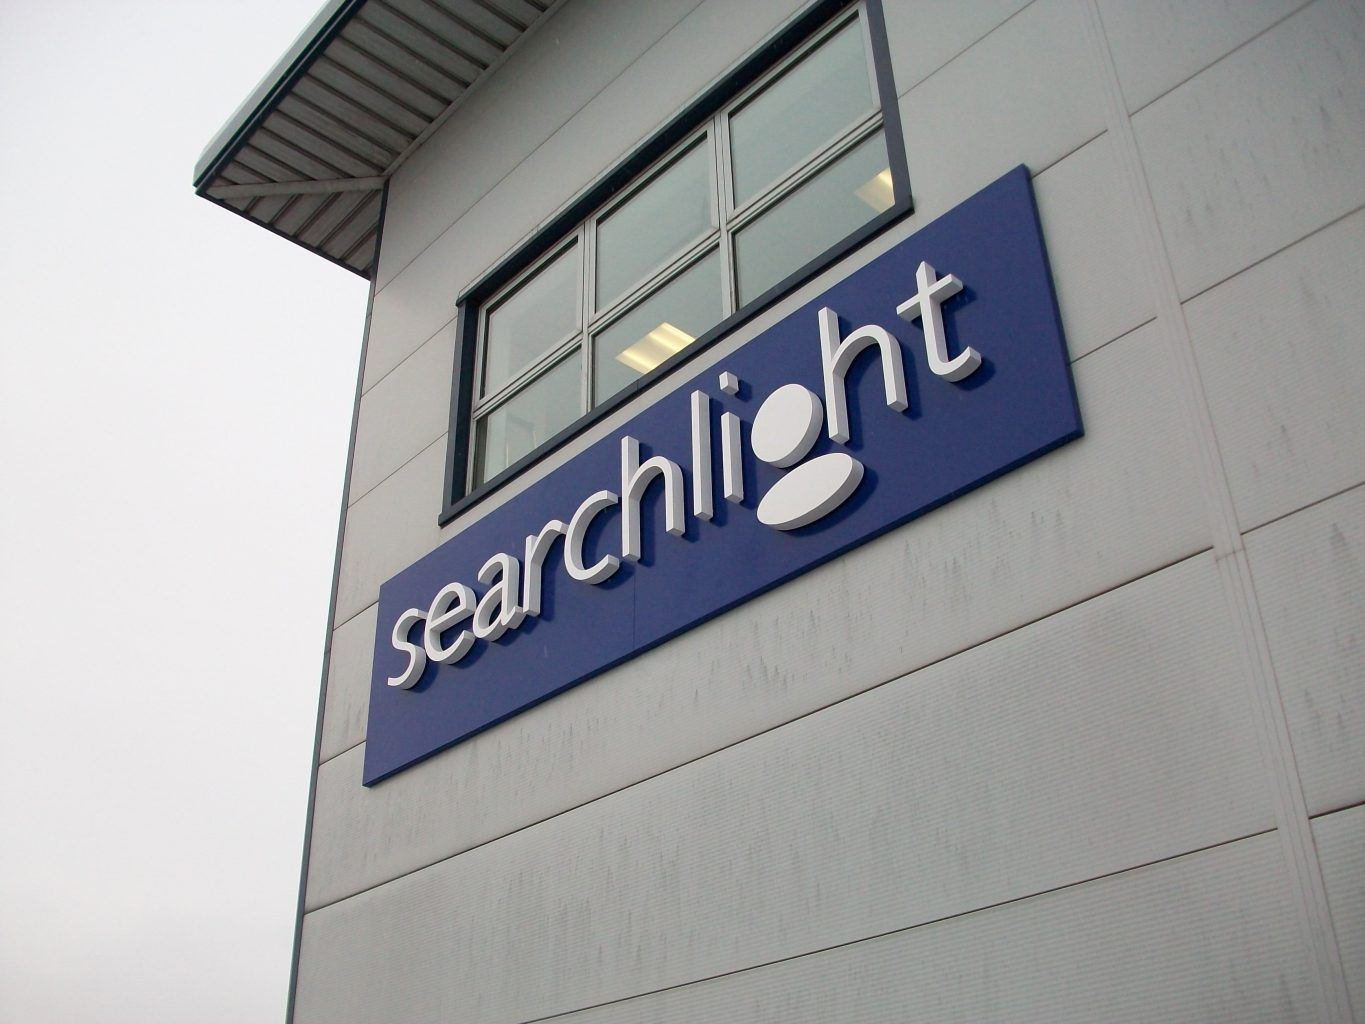 Searchlight Built up letters mounted to an aluminium sign tray